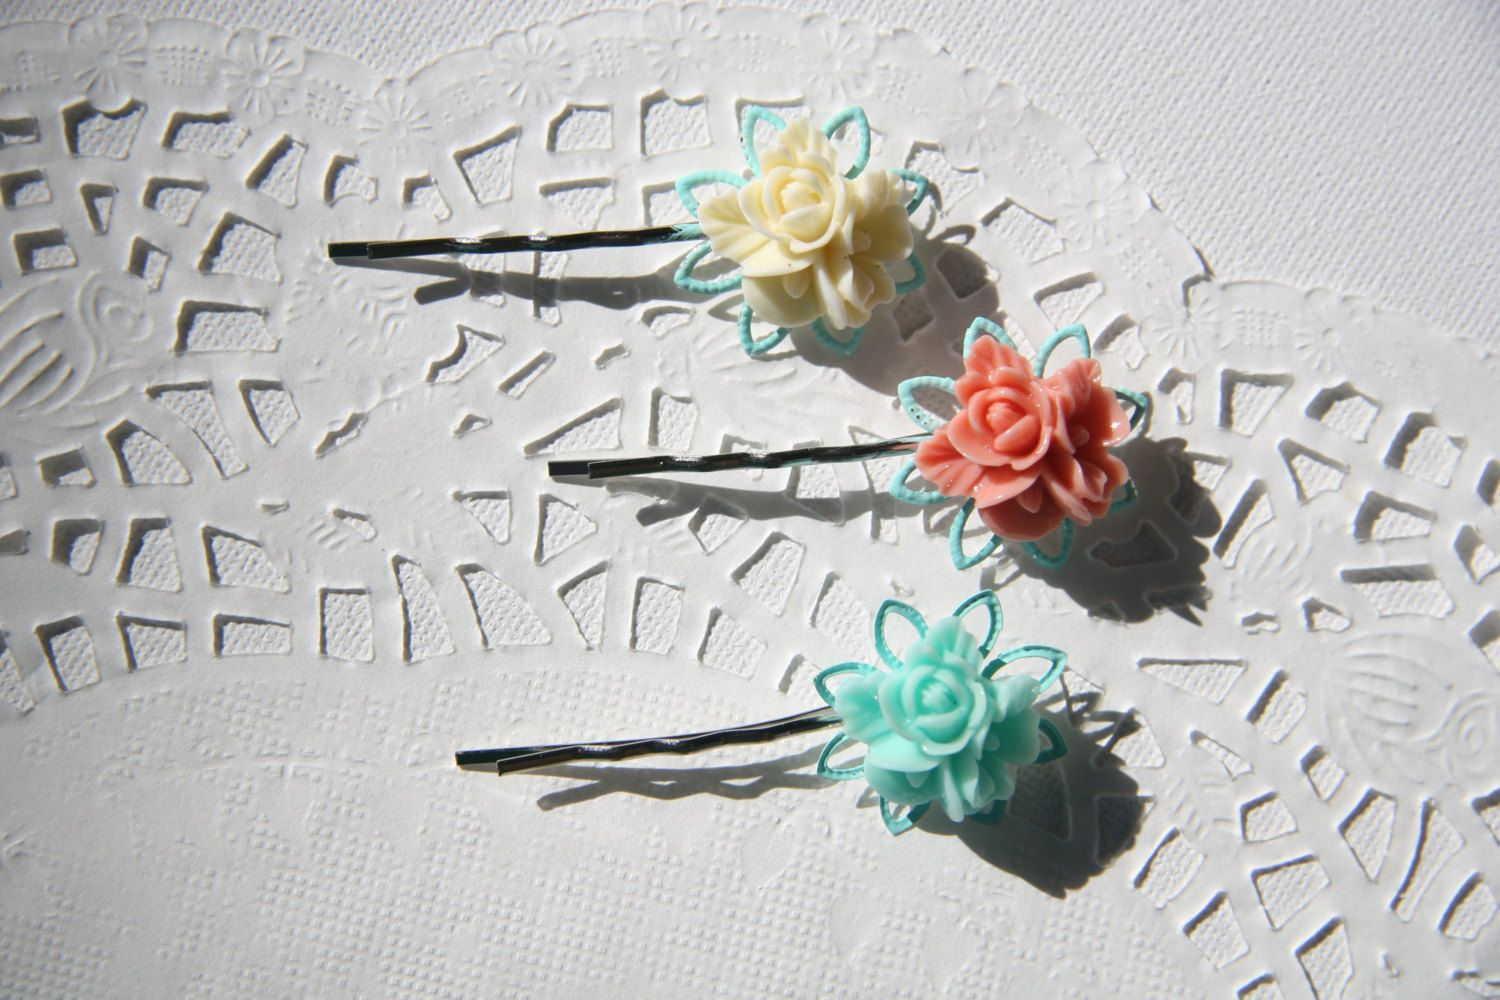 Cabochon utopia set of 3 filigreebobby pins flower rose mademoiselle victorianshabby chic pin clip barrette mint white pink by EtsyNazi on Etsy